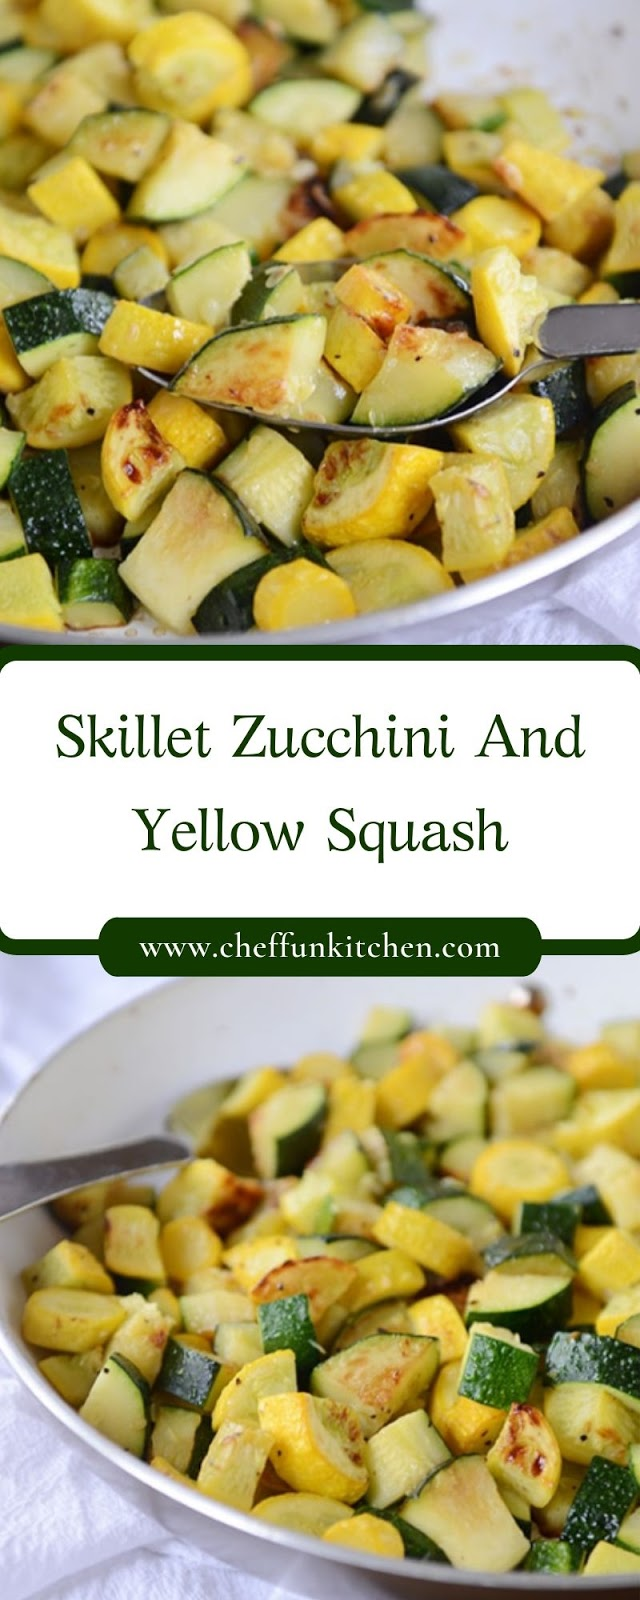 Skillet Zucchini And Yellow Squash